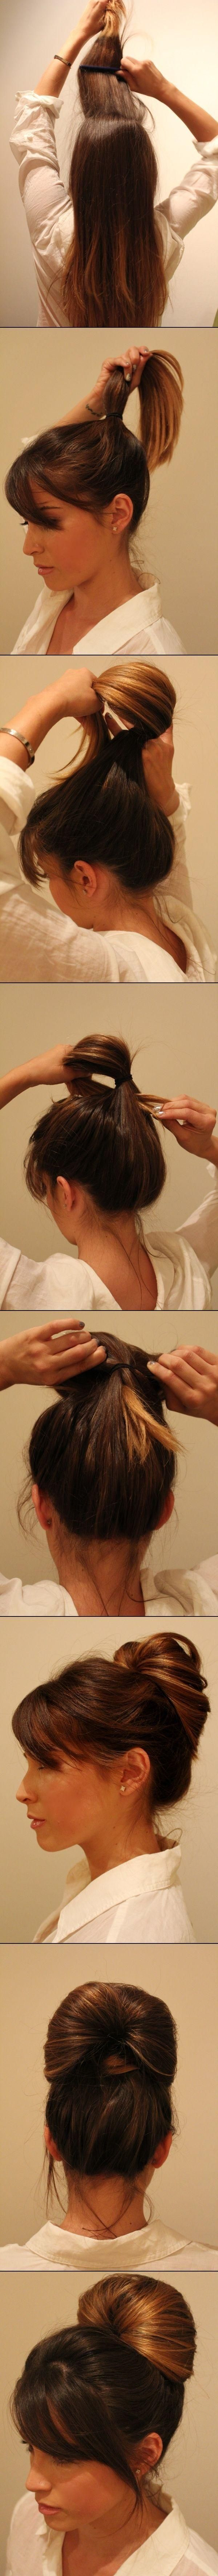 So much cuter than a ponytail. Love this! - beautyideaz